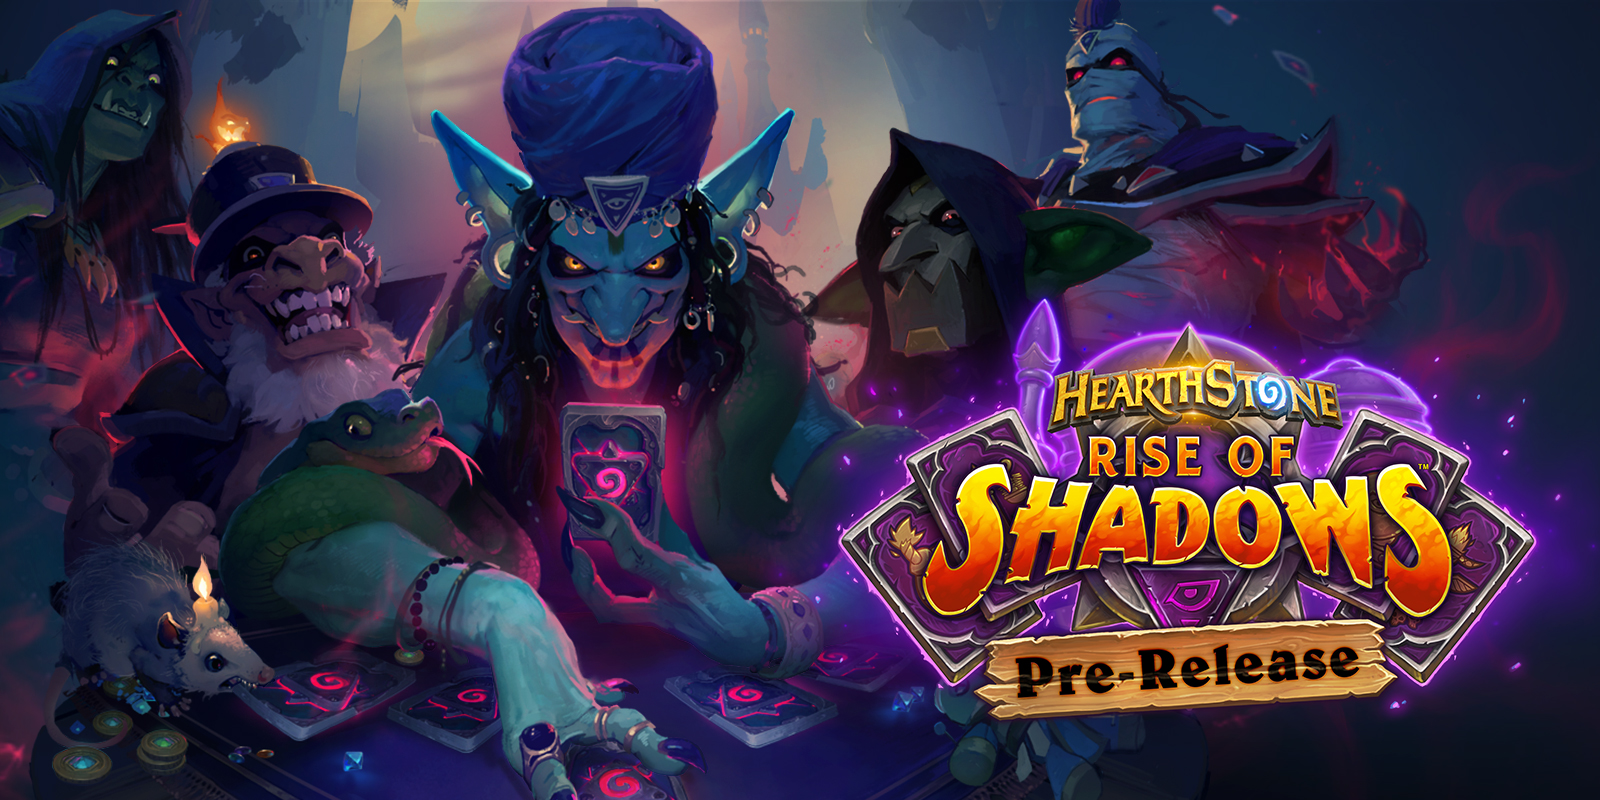 The Rise of Shadows Pre-Release Looms Over Dalaran!